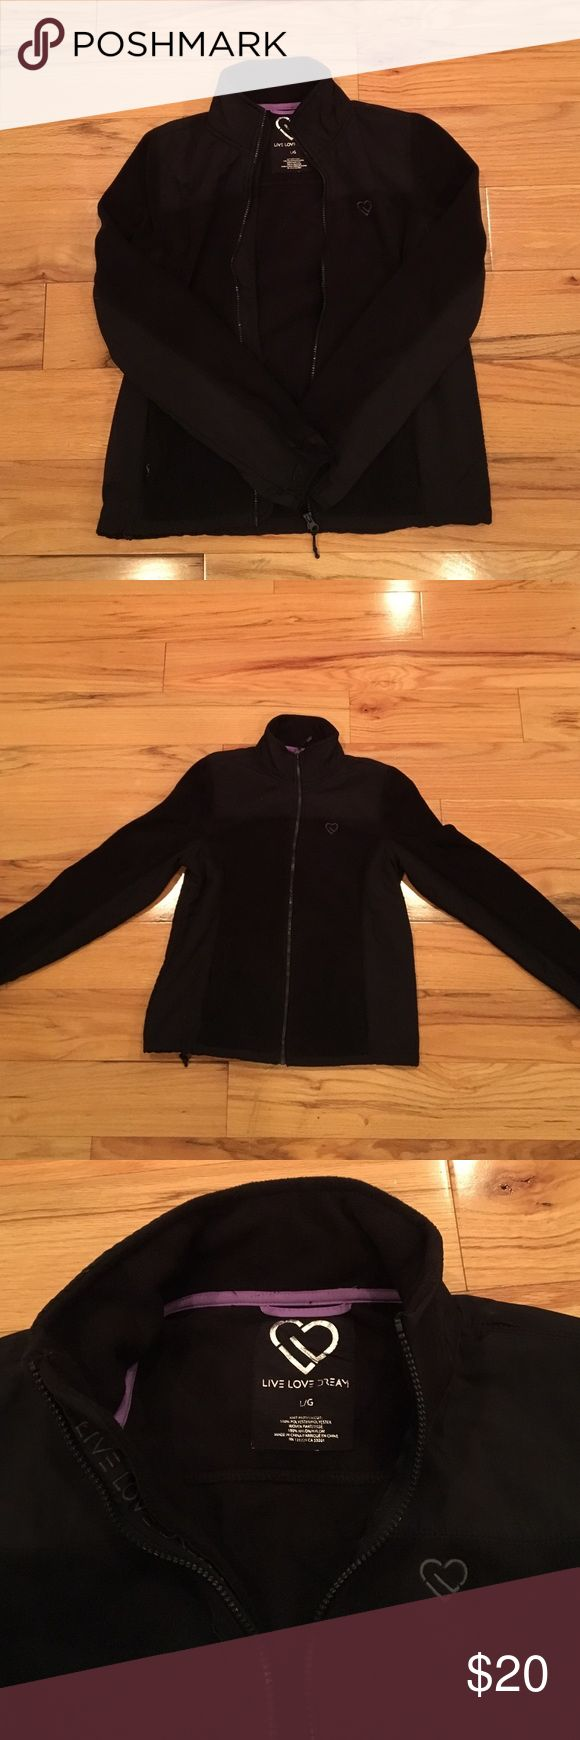 Aeropastale black zip up Cozy fleece zip up. Great for the fall or chilly spring nights. Never worn. Tags removed. Aeropostale Tops Sweatshirts & Hoodies